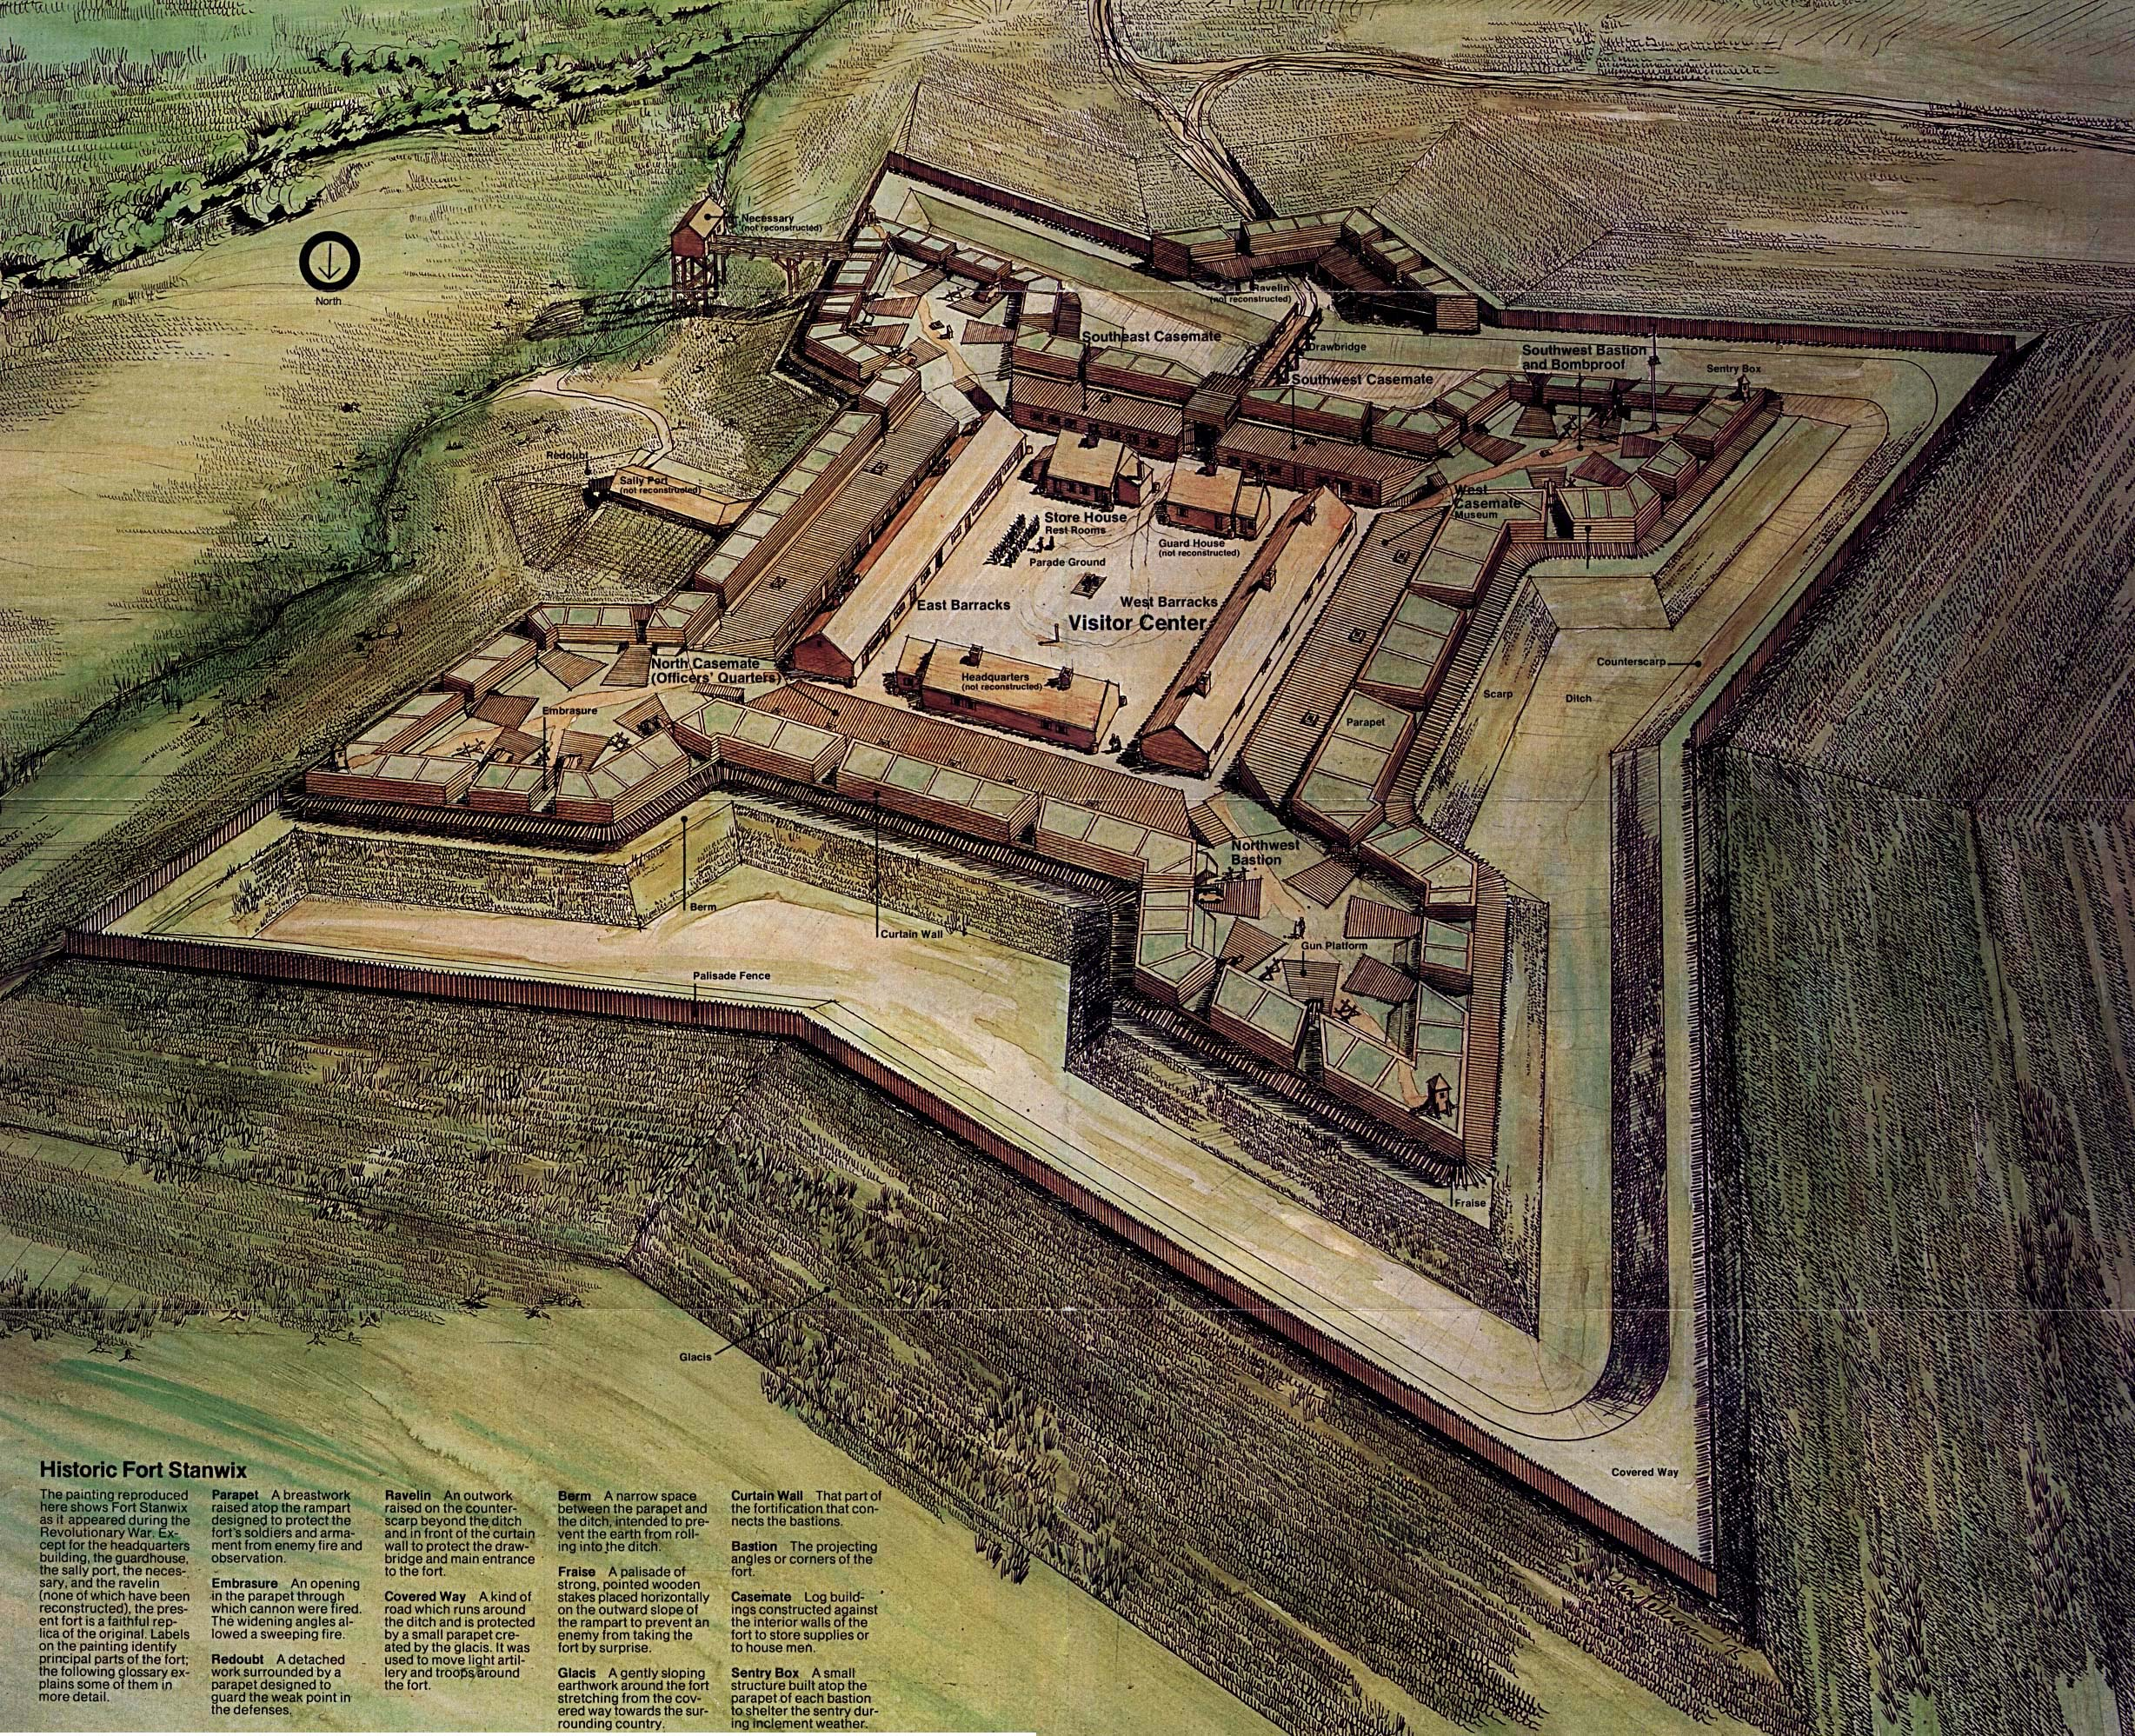 Fort Washington Map.Early Maps Collections Maps Research Subject Guides At Stony